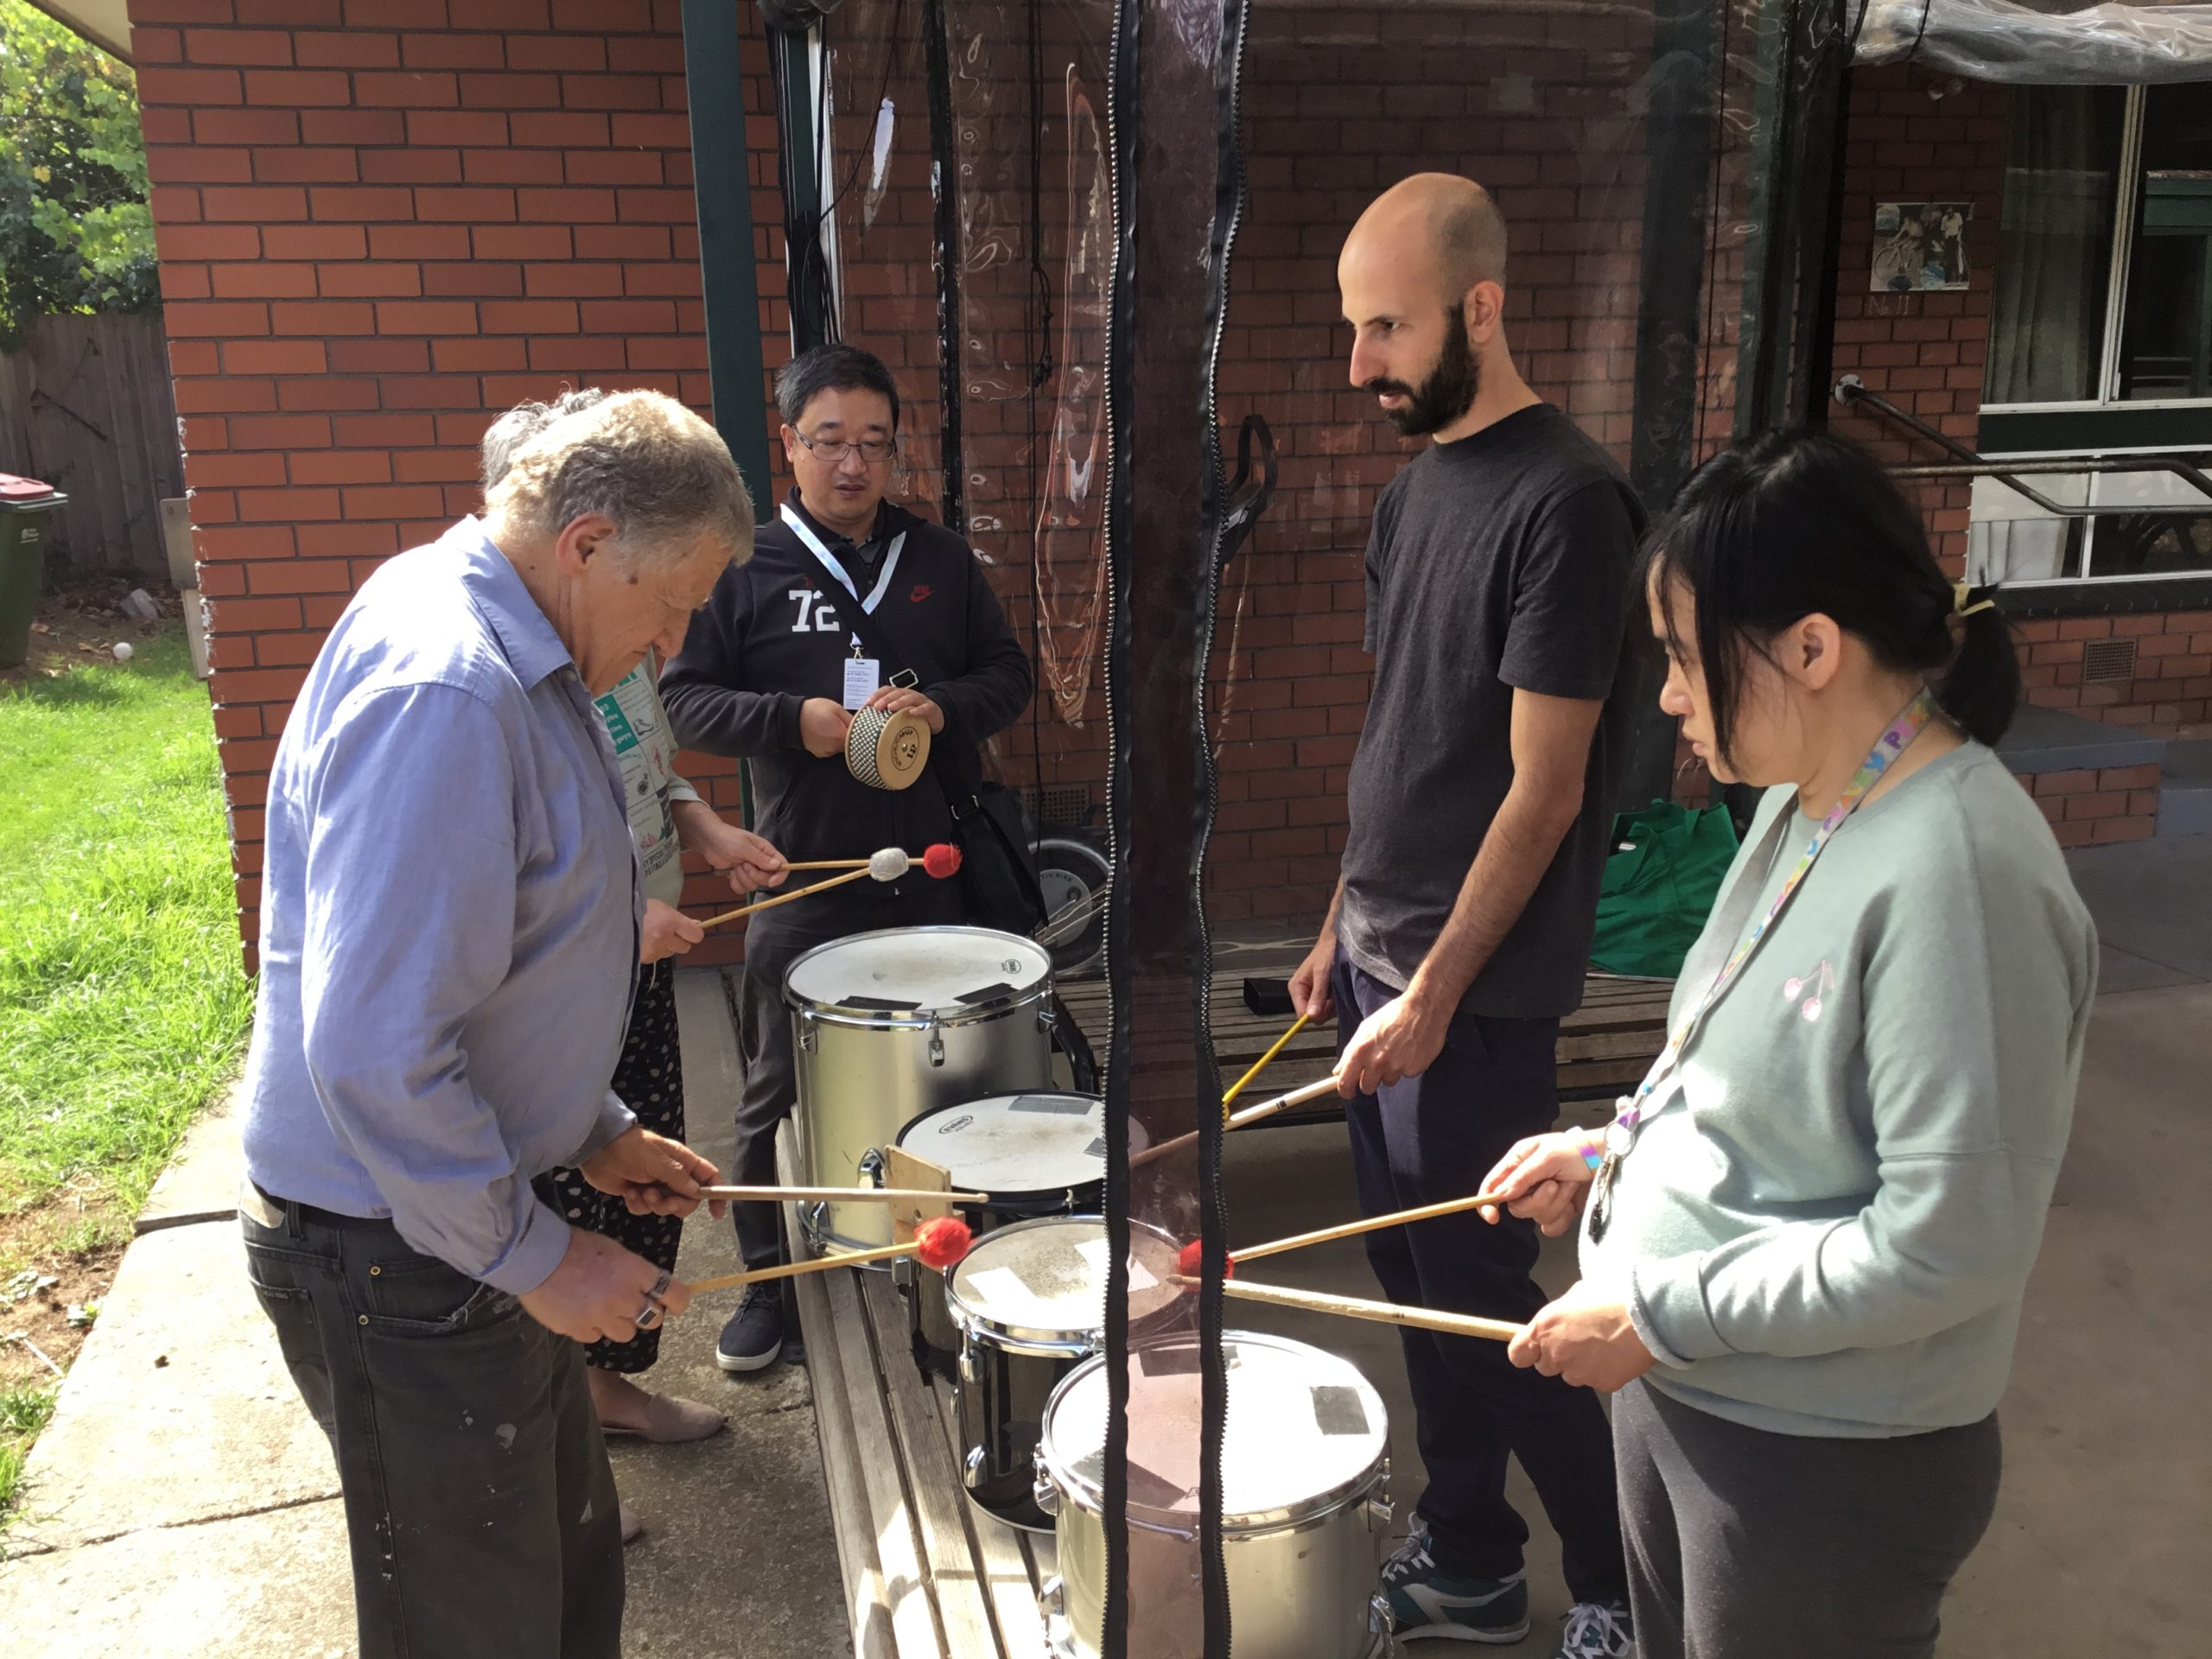 4 people are stand and playing the drums. While another person plays a Cabasa.